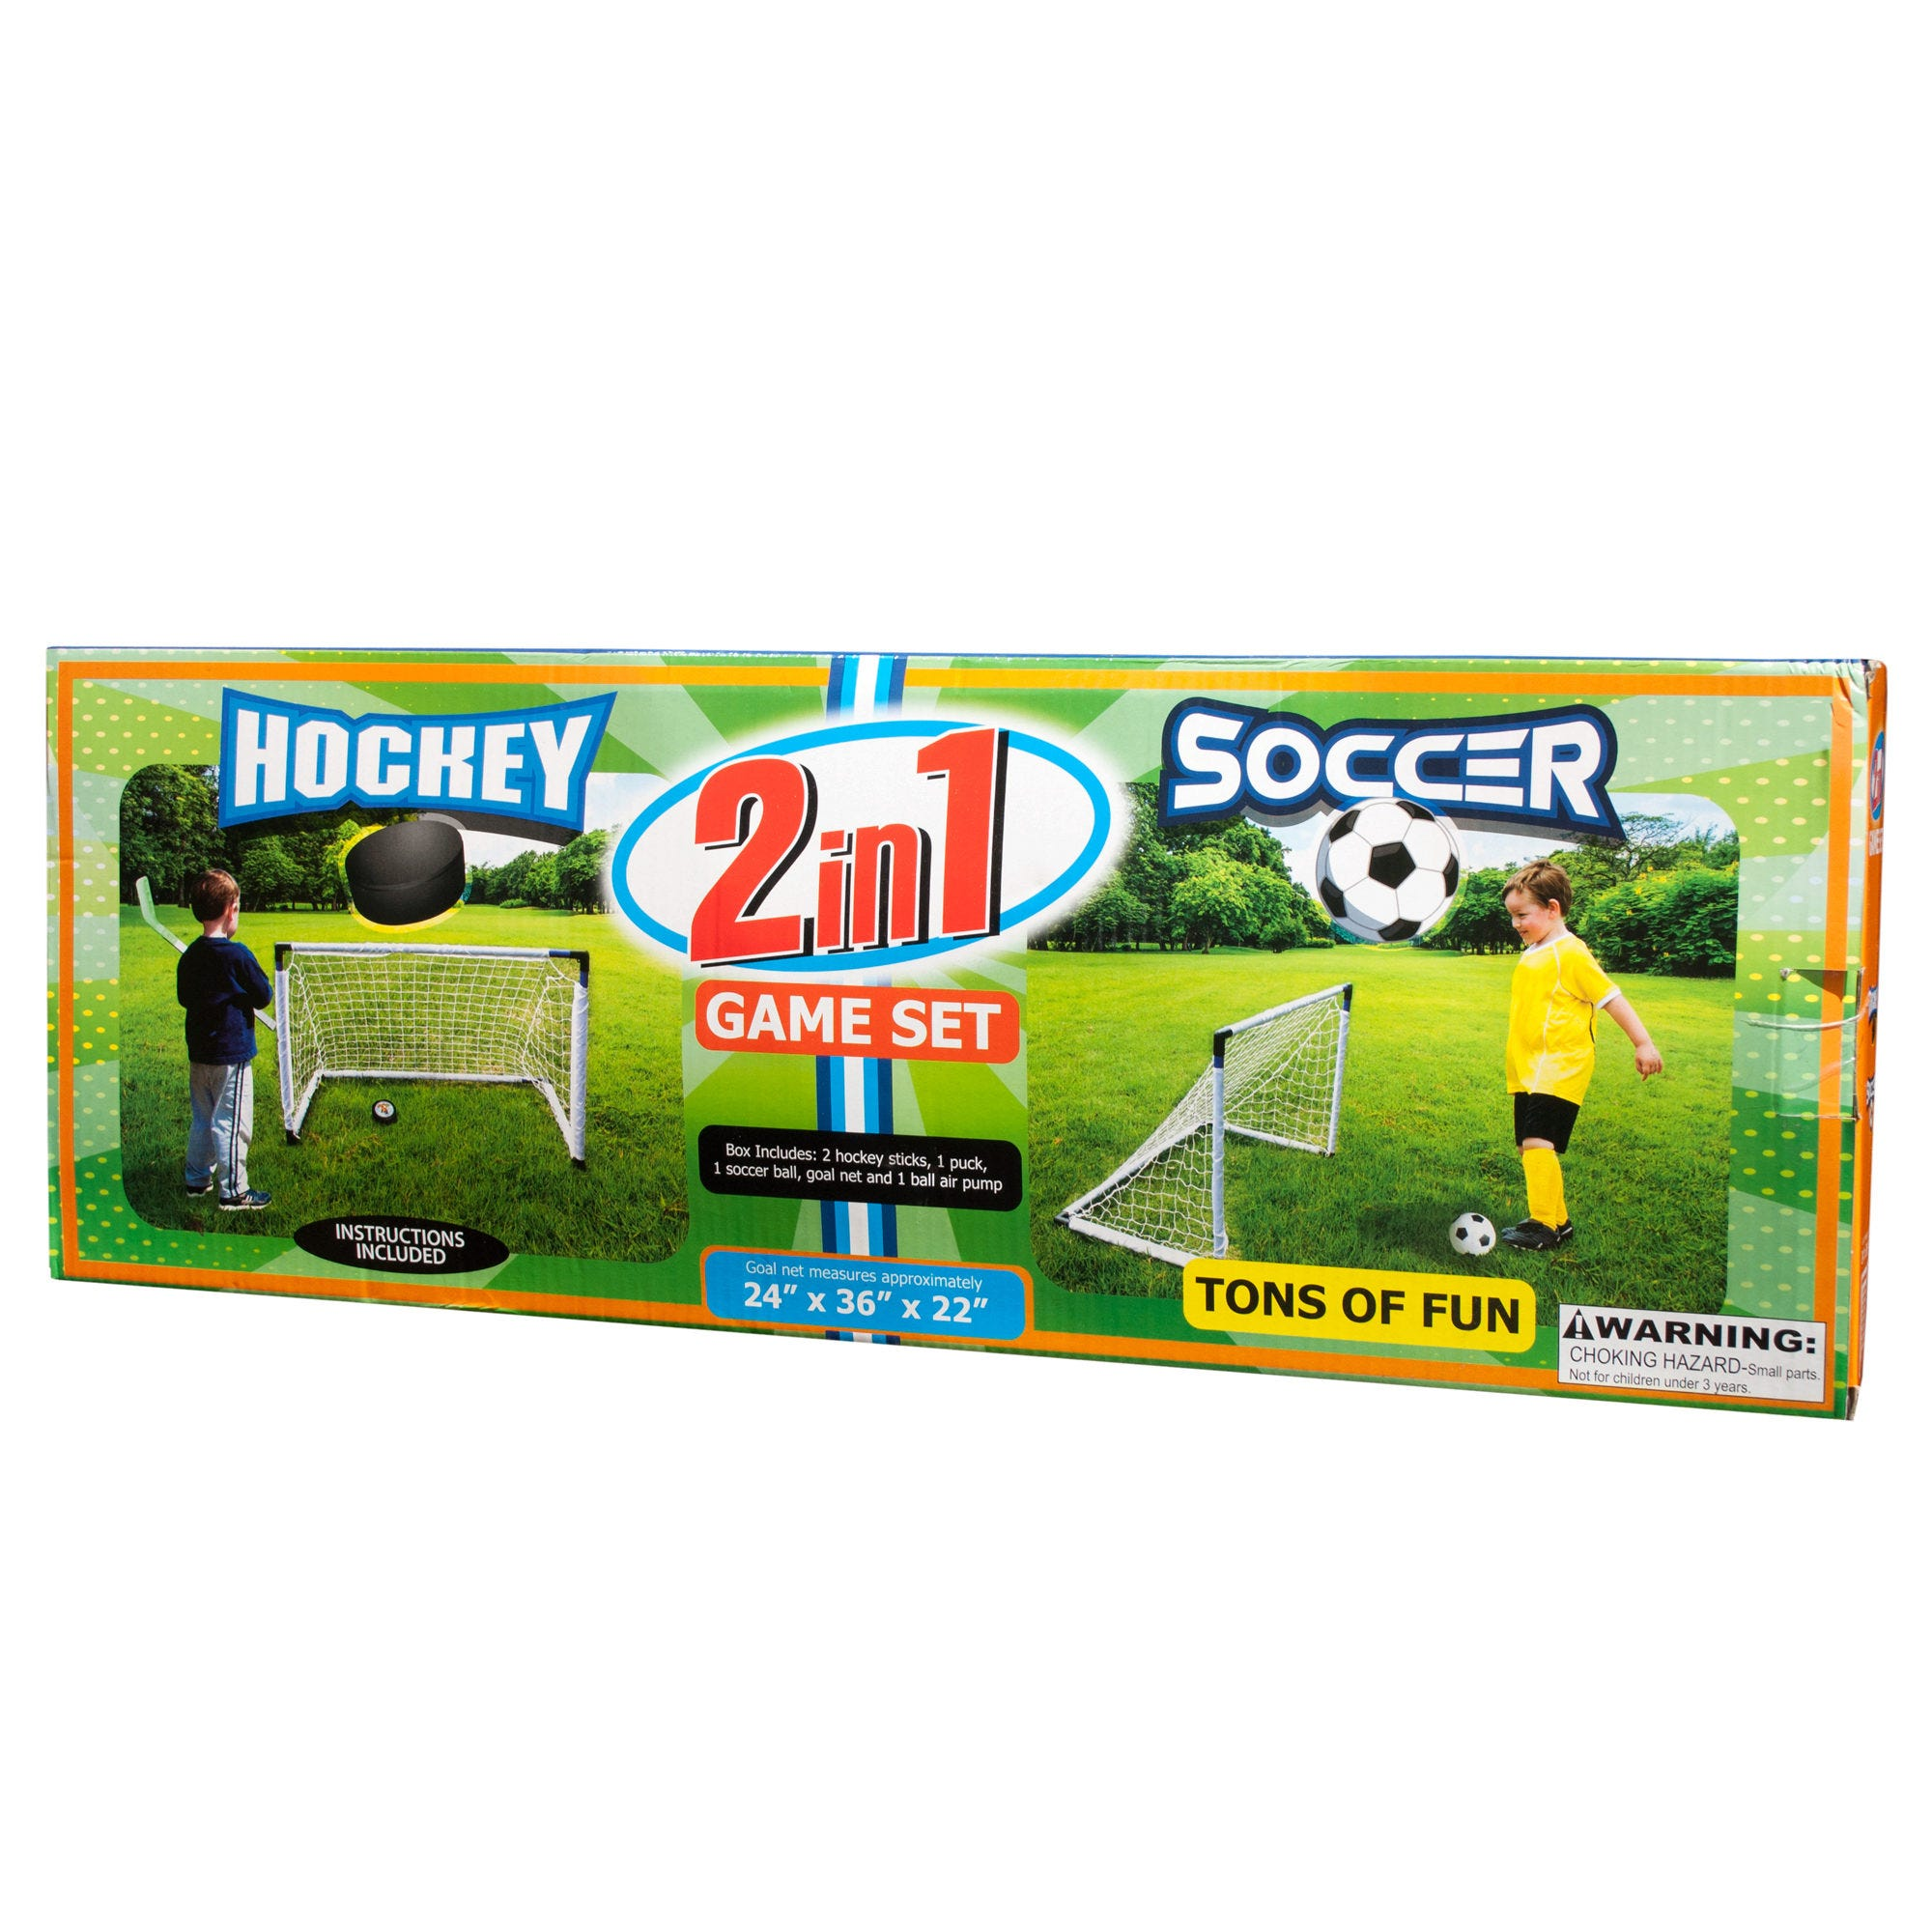 2 in 1 Soccer & HOCKEY Game Set- Qty 4